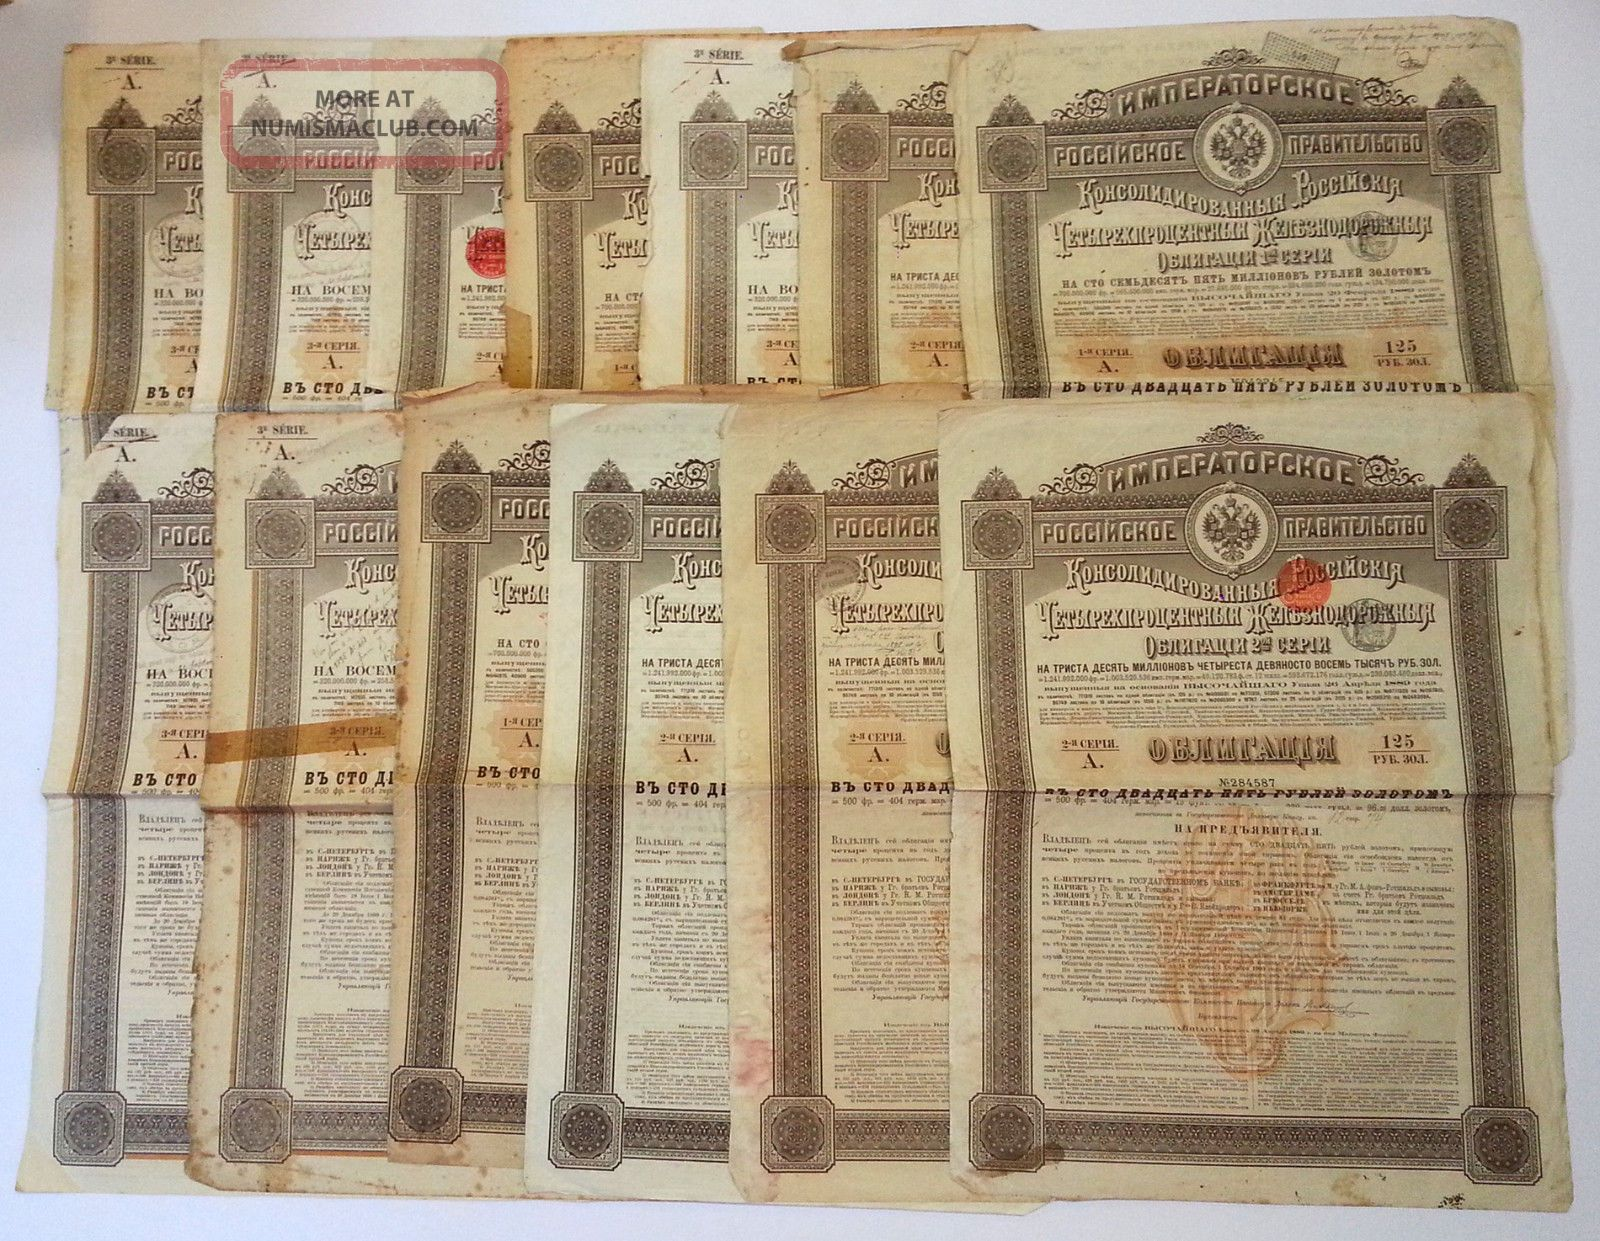 Russia - Russian Consolidated 4 Railroad 125 Gold Rbls 1889 X13 Stocks & Bonds, Scripophily photo